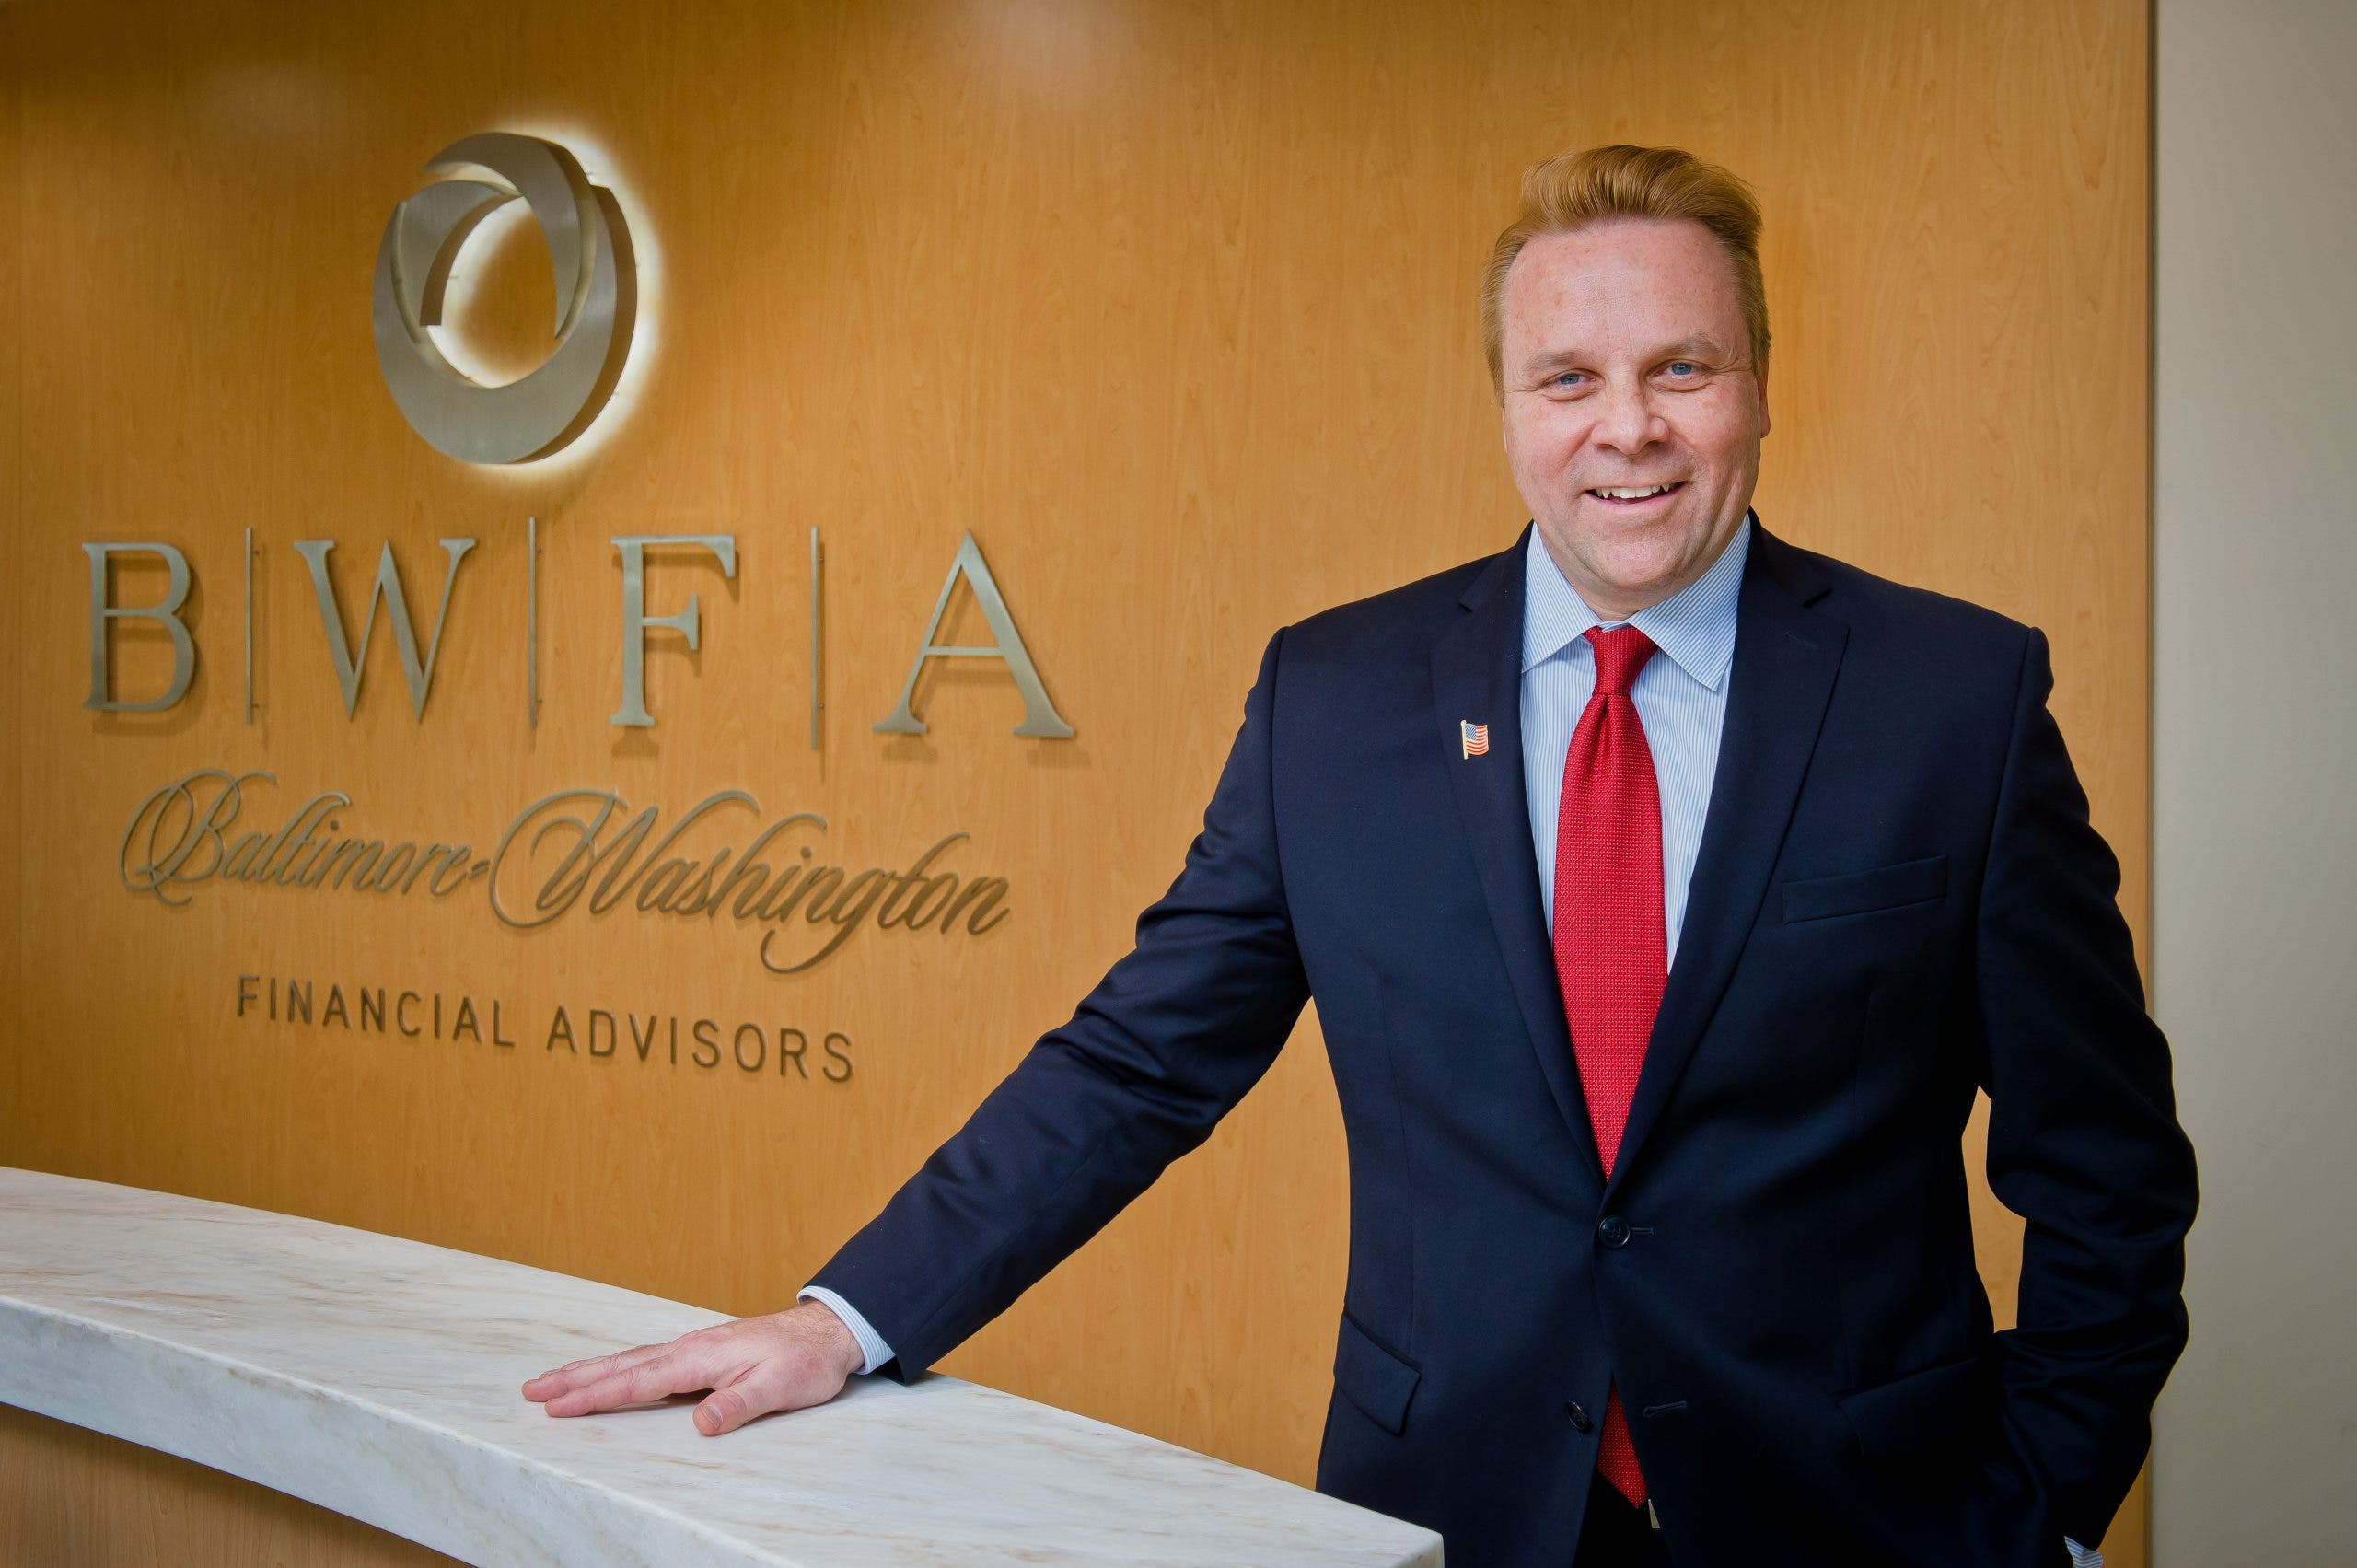 Rob Carpenter stands in front of Baltimore Washington Financial Advisors sign